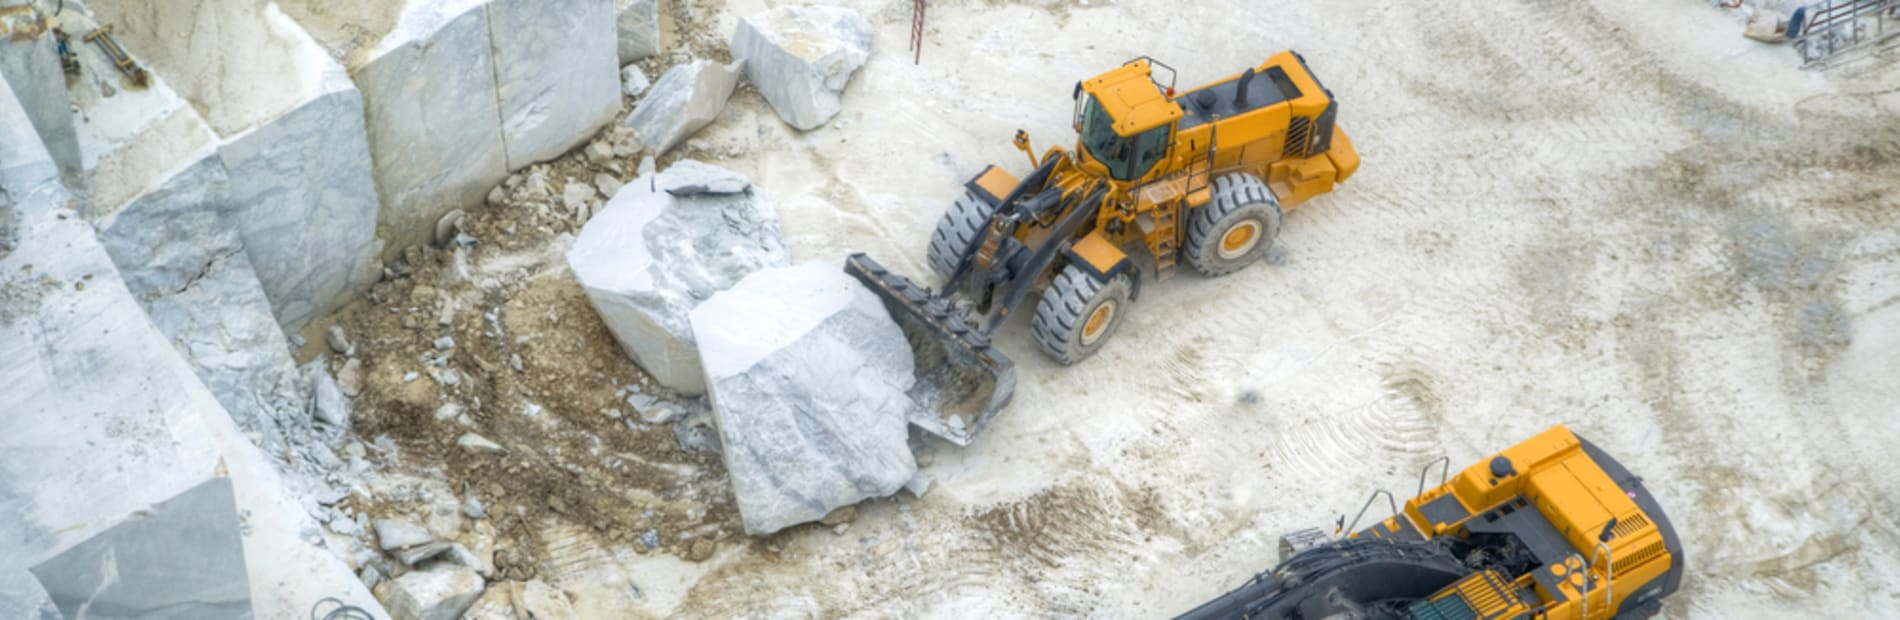 Diggers working a natural stone quarry